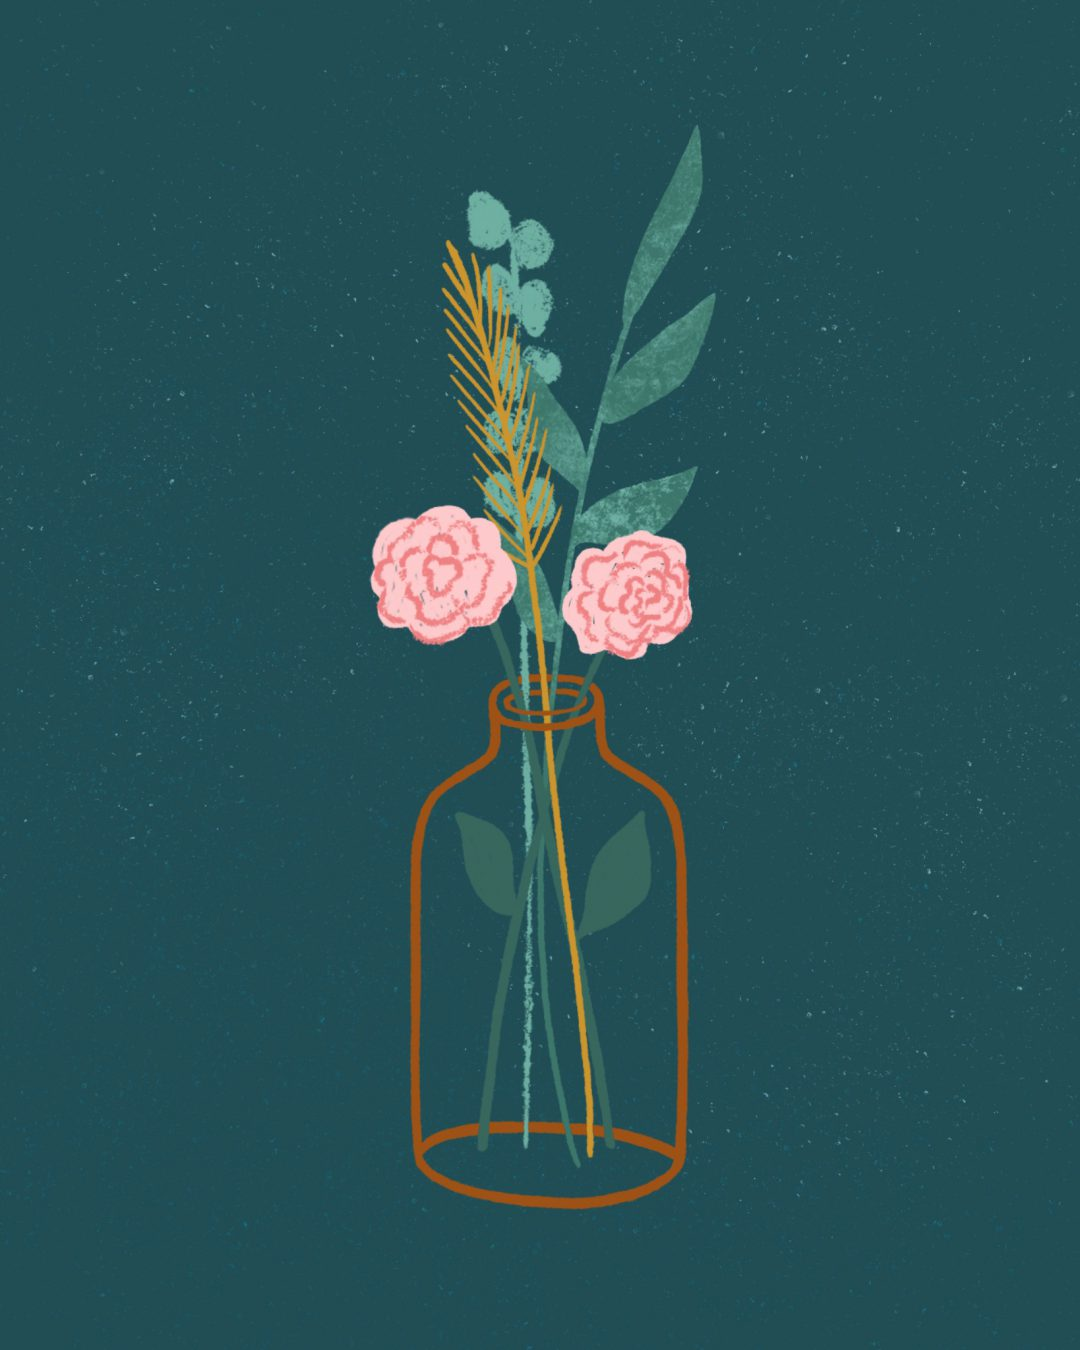 Illustration of a vase with some foliage and flowers inside